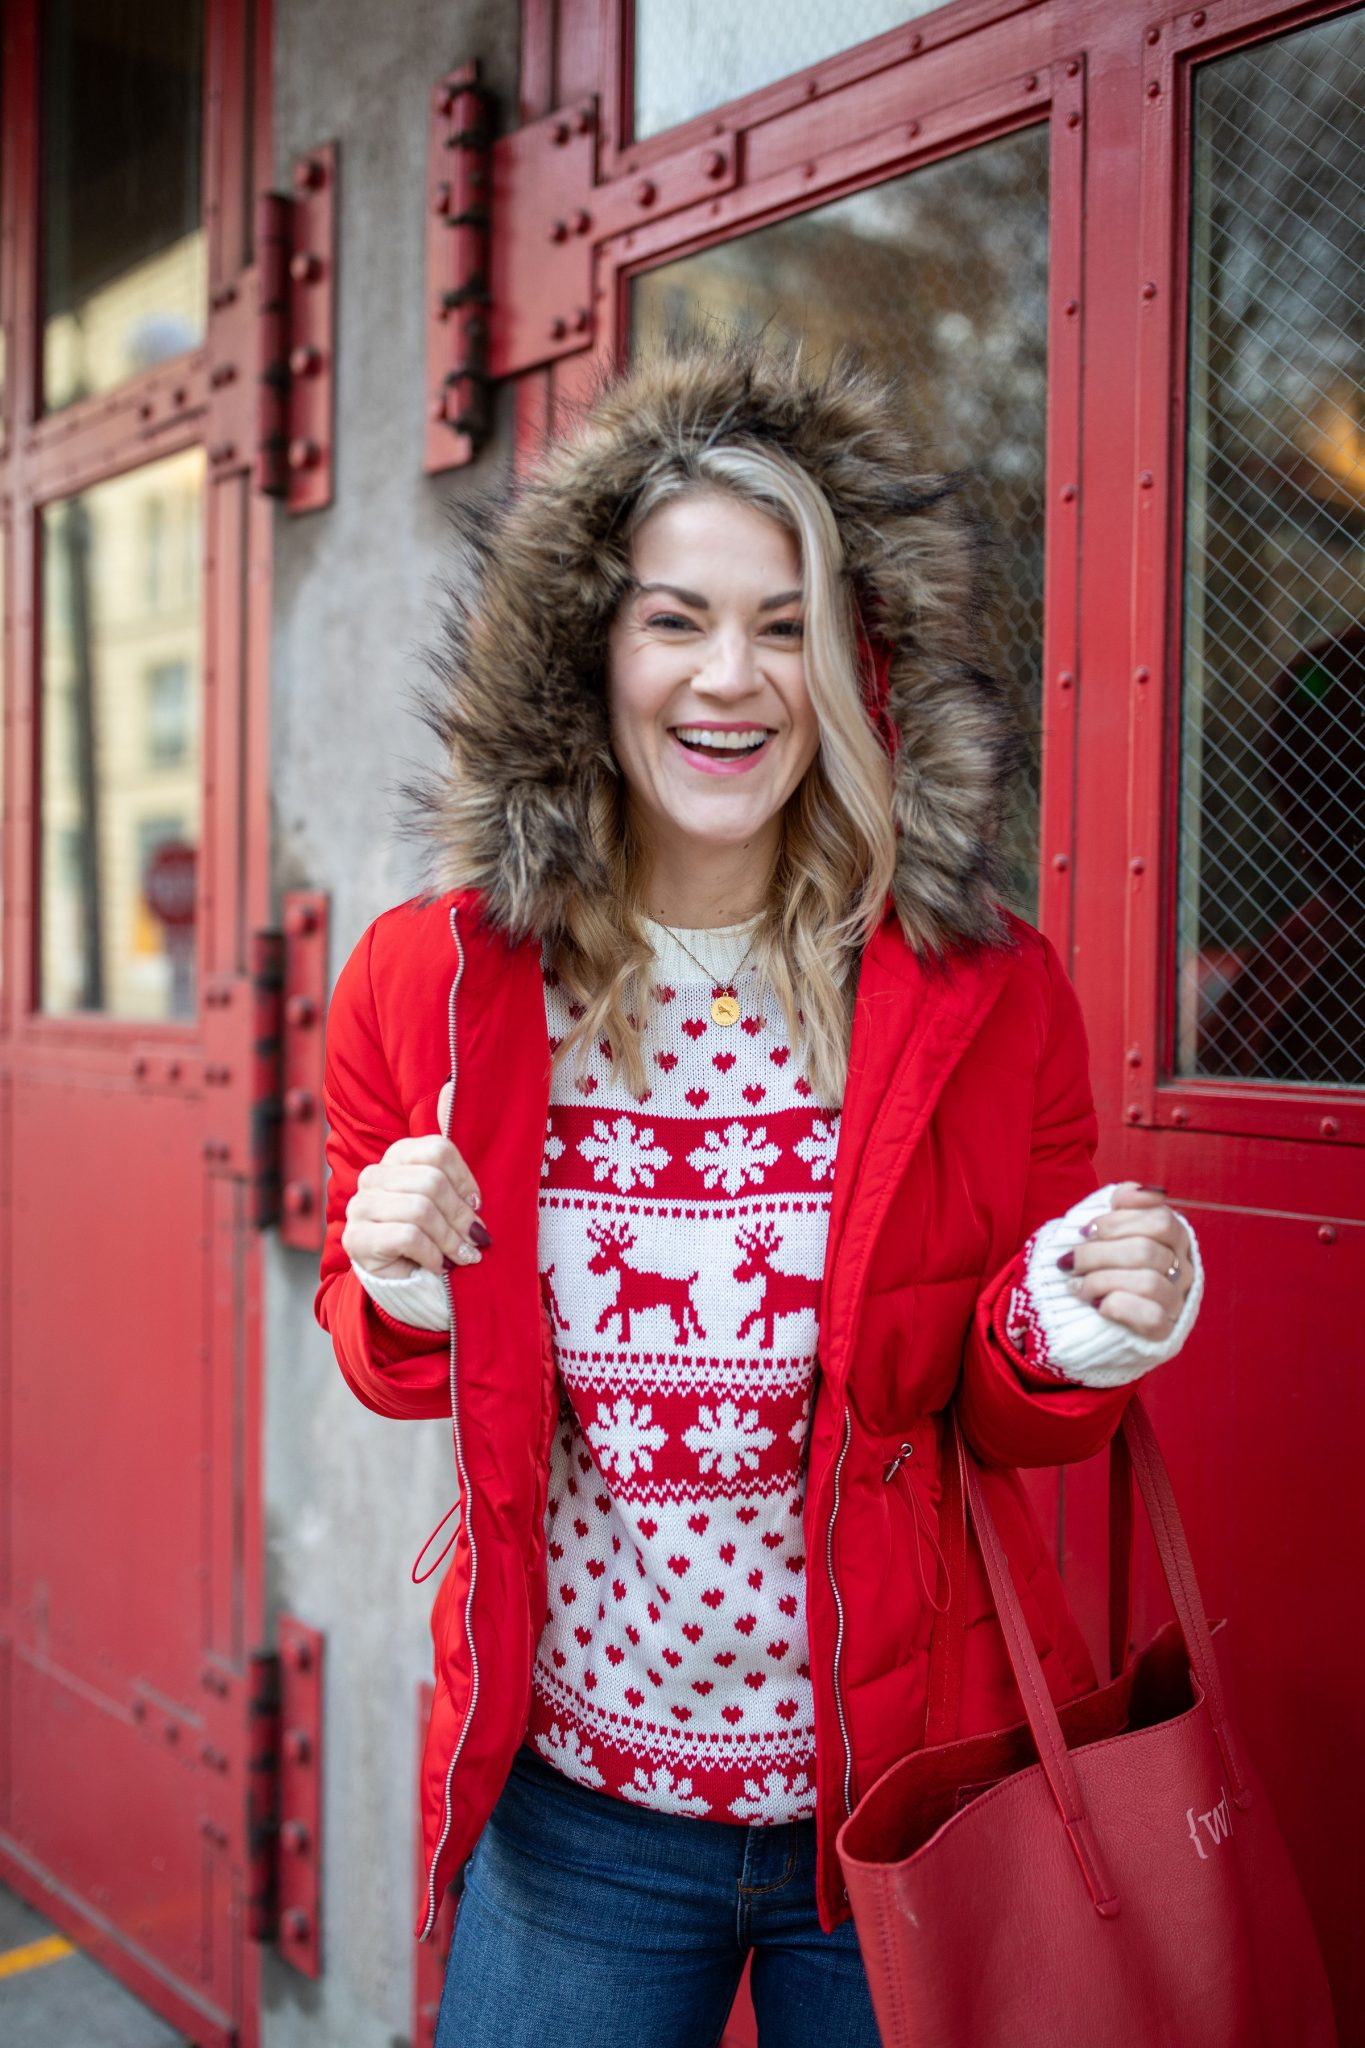 Red Puffer Jacket by popular Seattle tall fashion blog, Whit Wanders: image of a woman standing in front of a red metal door and wearing a red puffer jacket, red and white holiday sweater, and jeans.